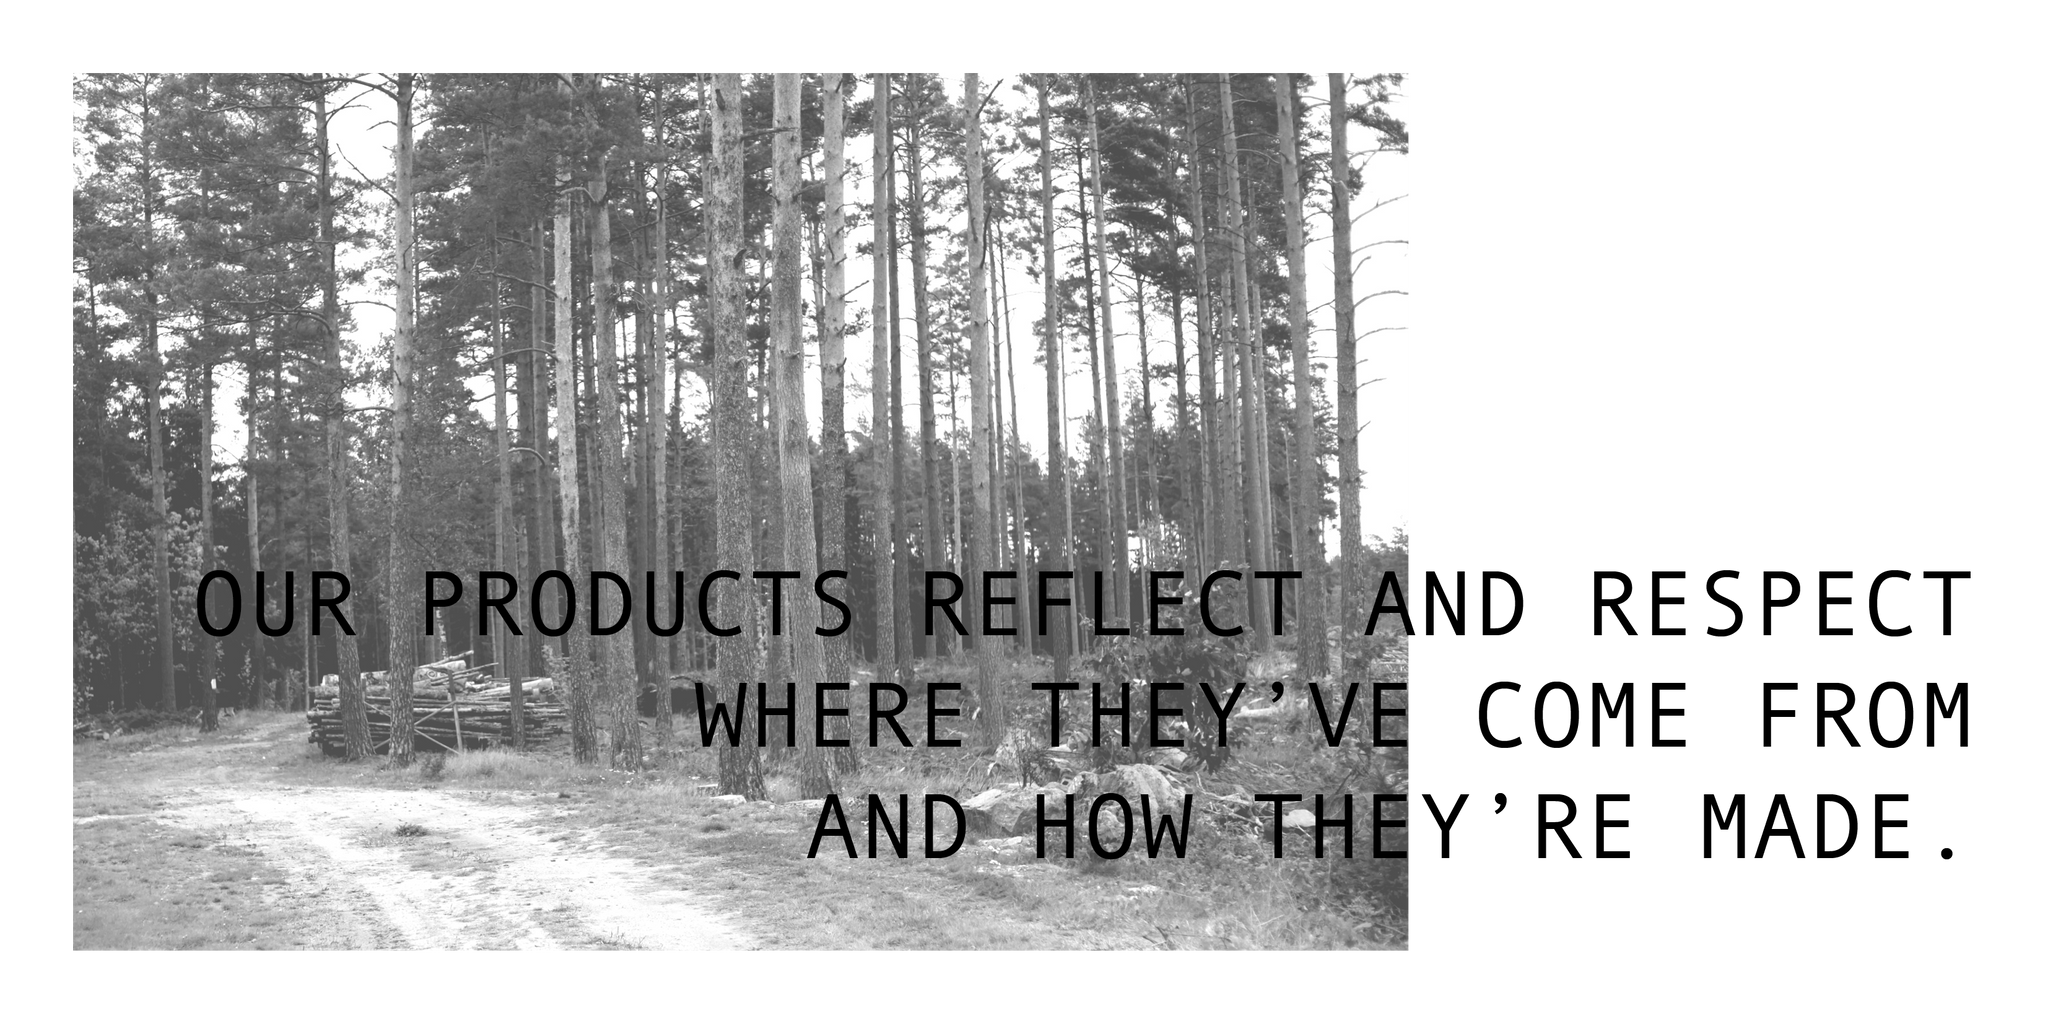 Our products reflect and respect where they've come from and how they're made